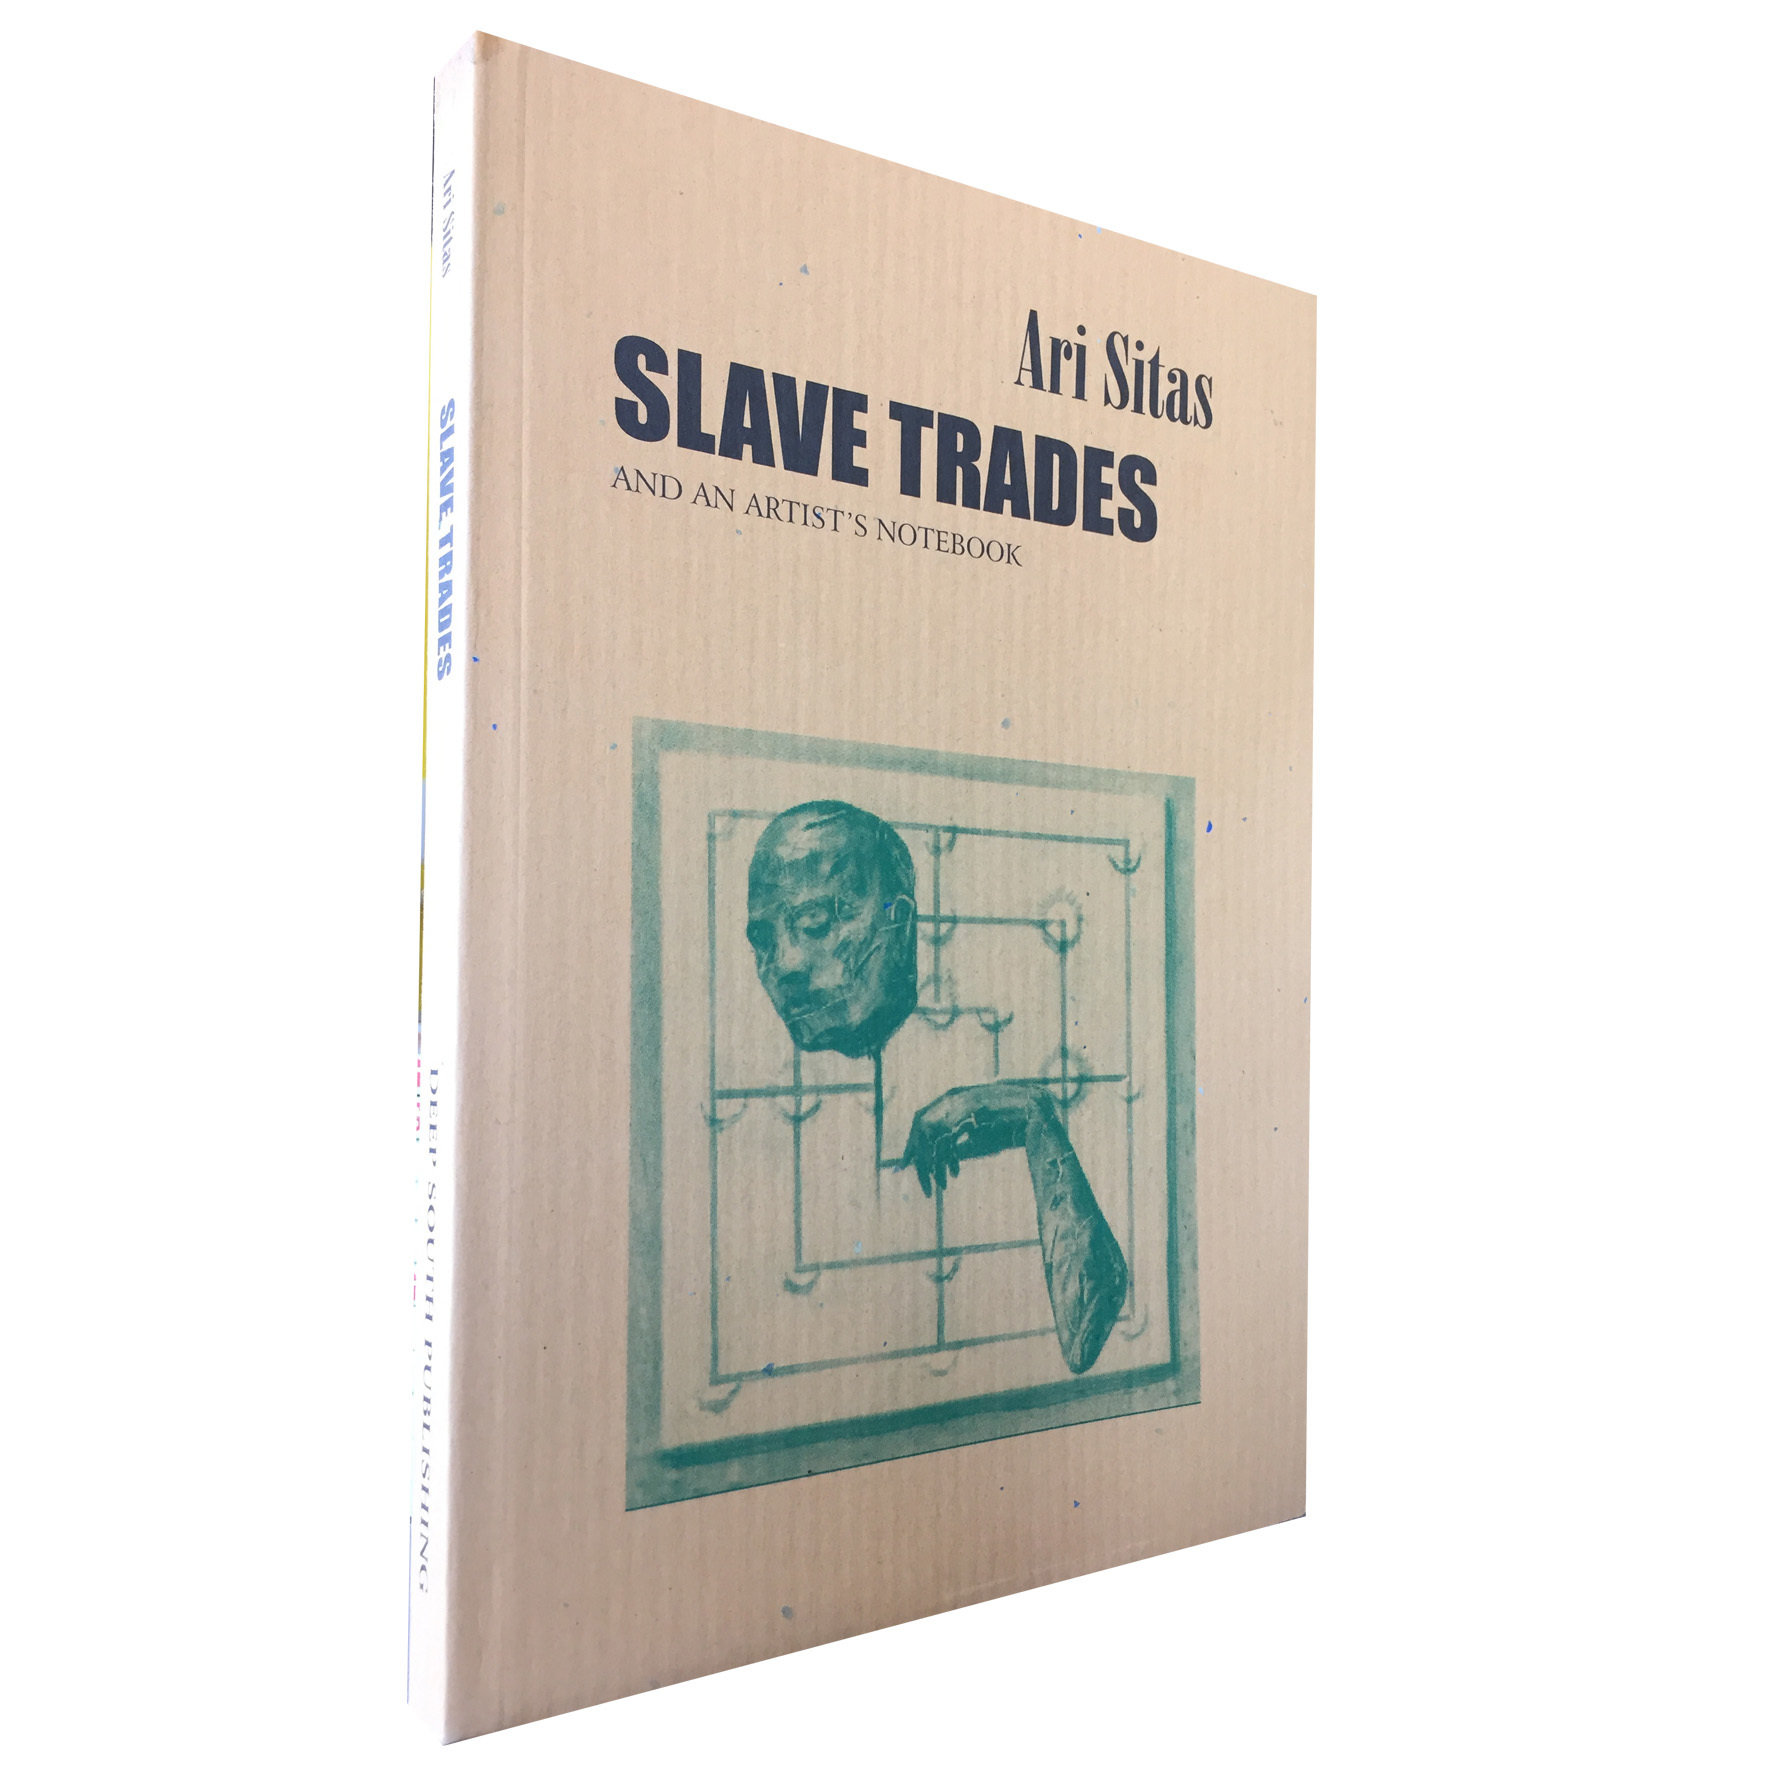 Slave Trades and an Artist's Notebook by Ari Sitas (Deep South) DS16